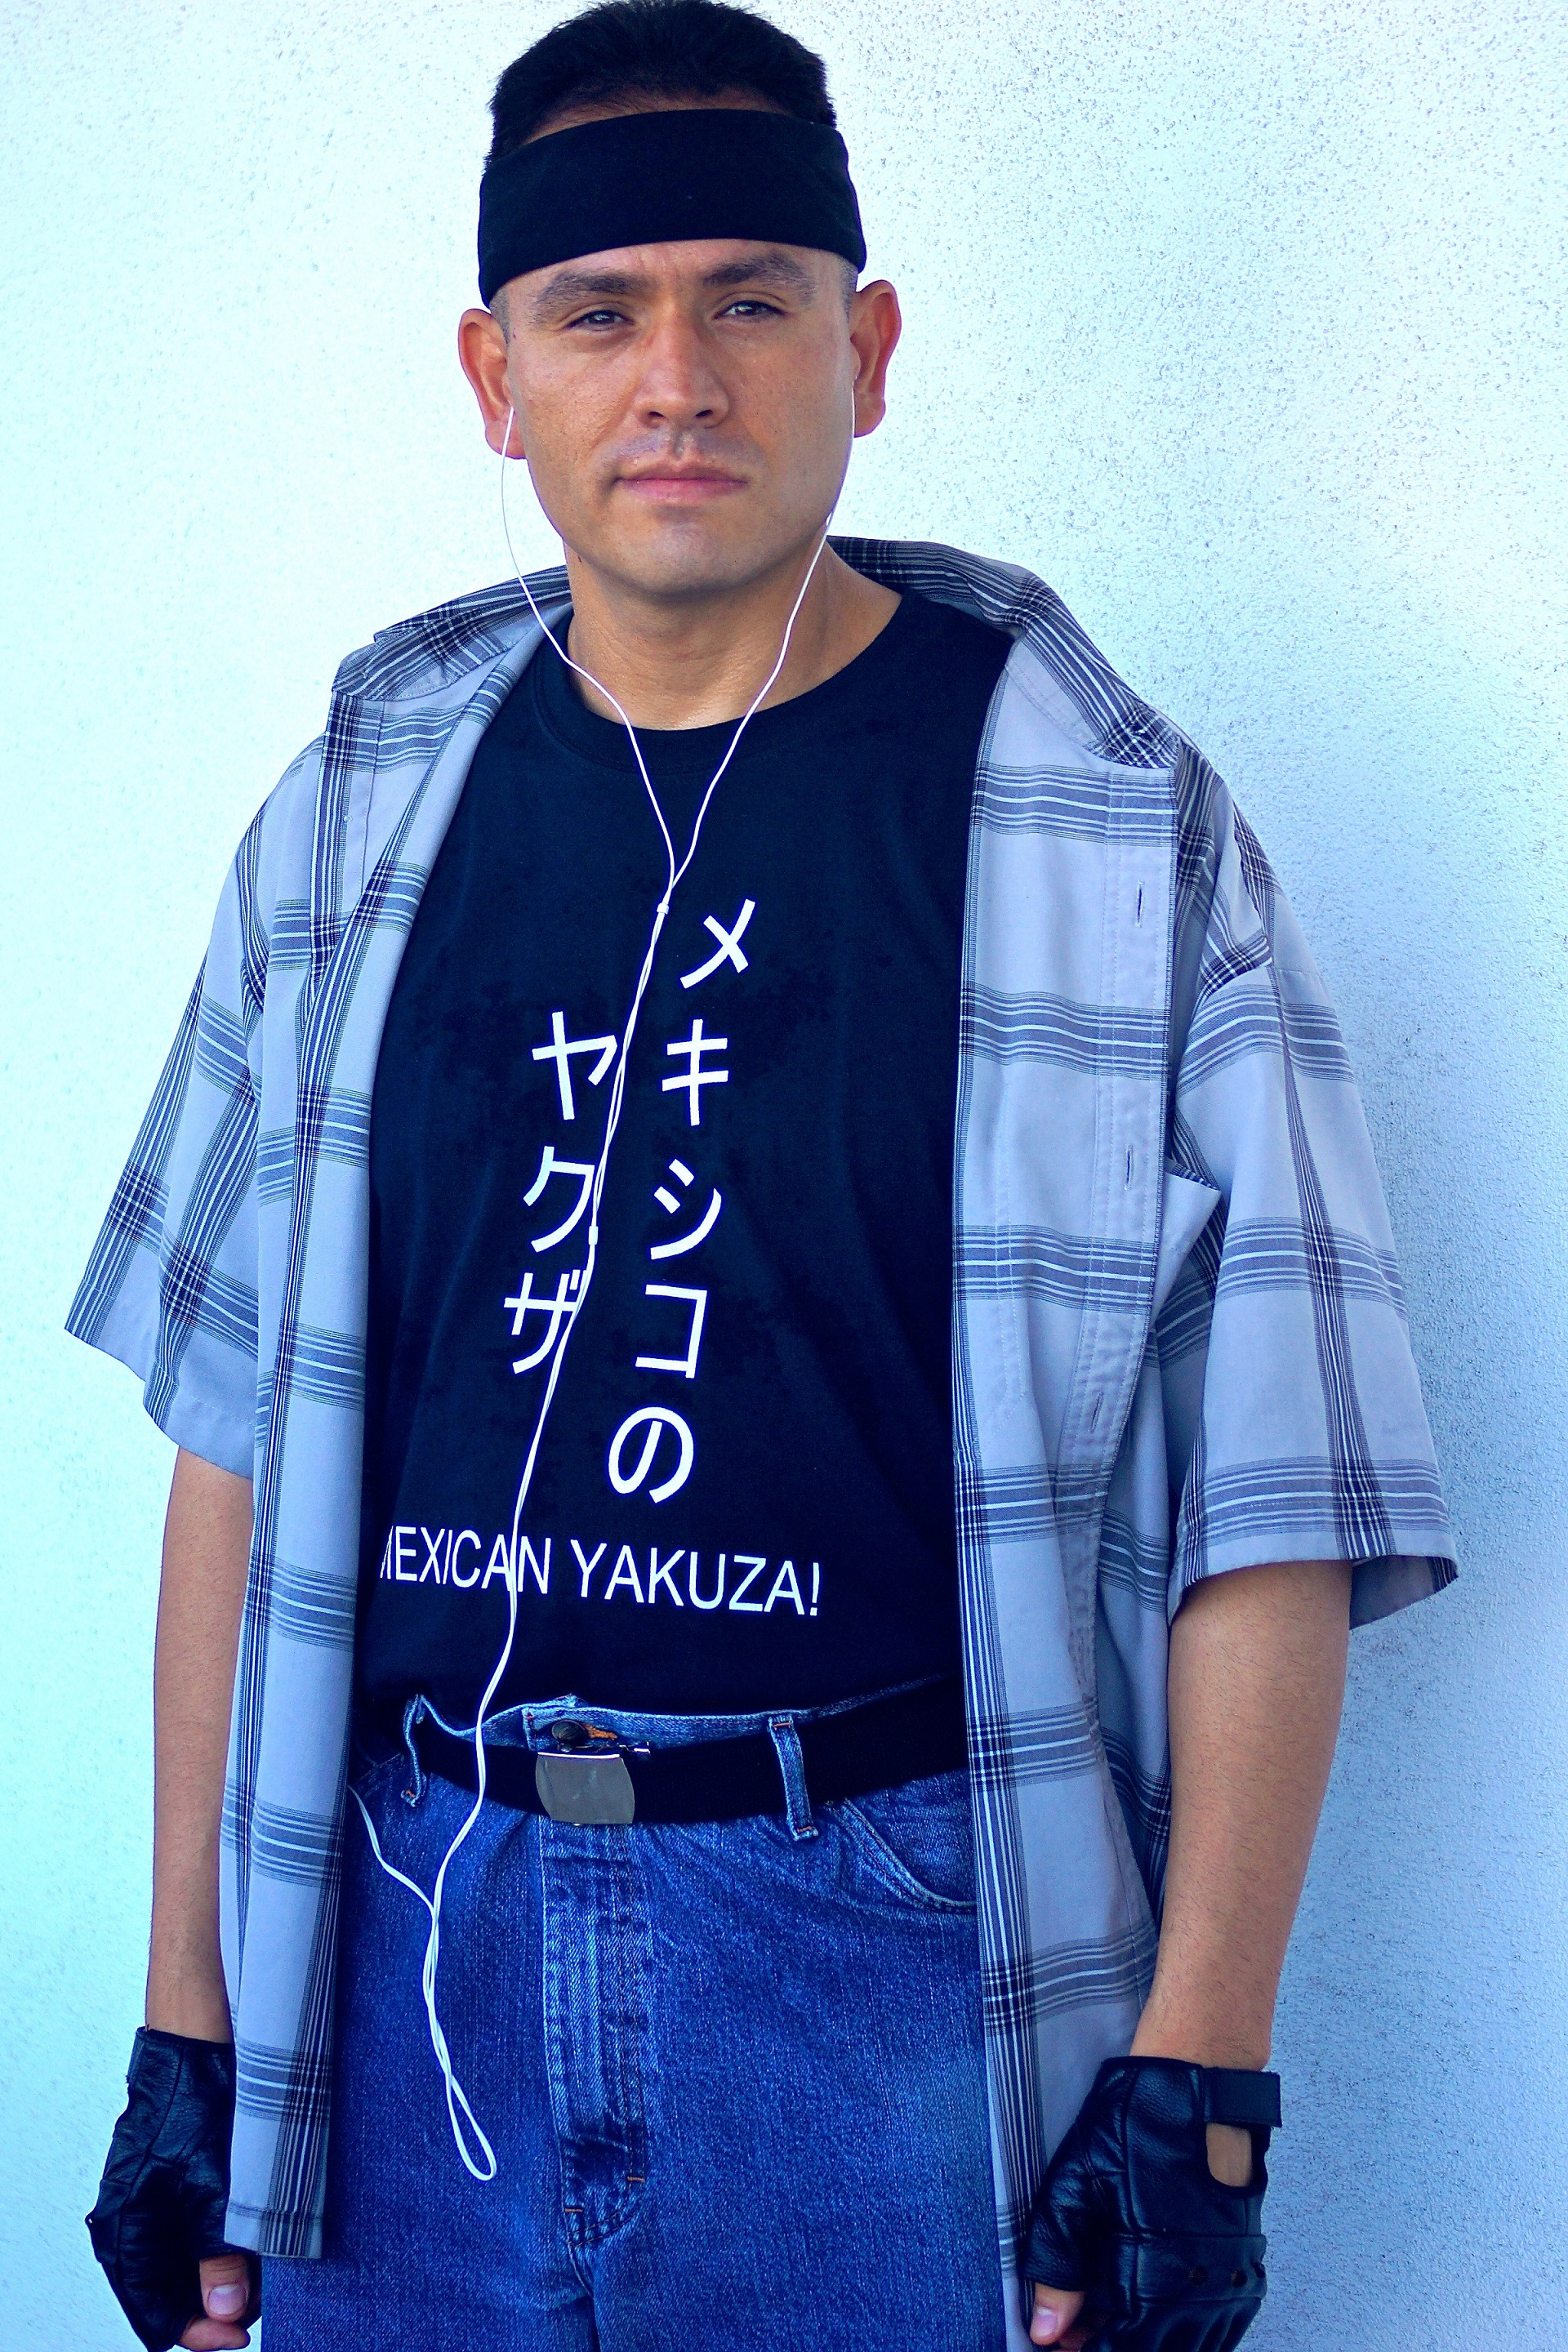 Man in shirt with flannel and headband.